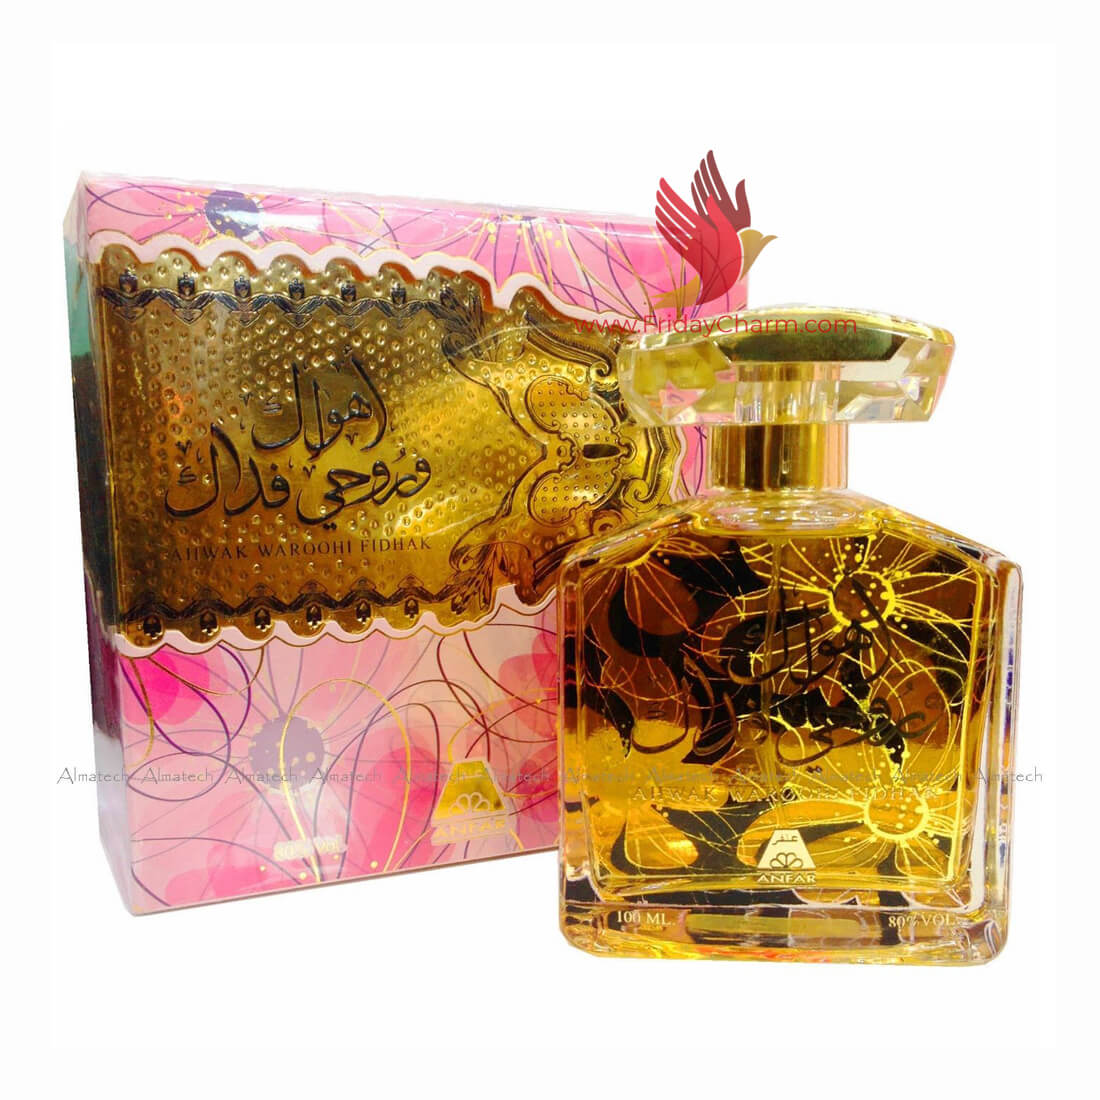 Anfar Ahwak Waroohl Fidha Oud Perfume For Men